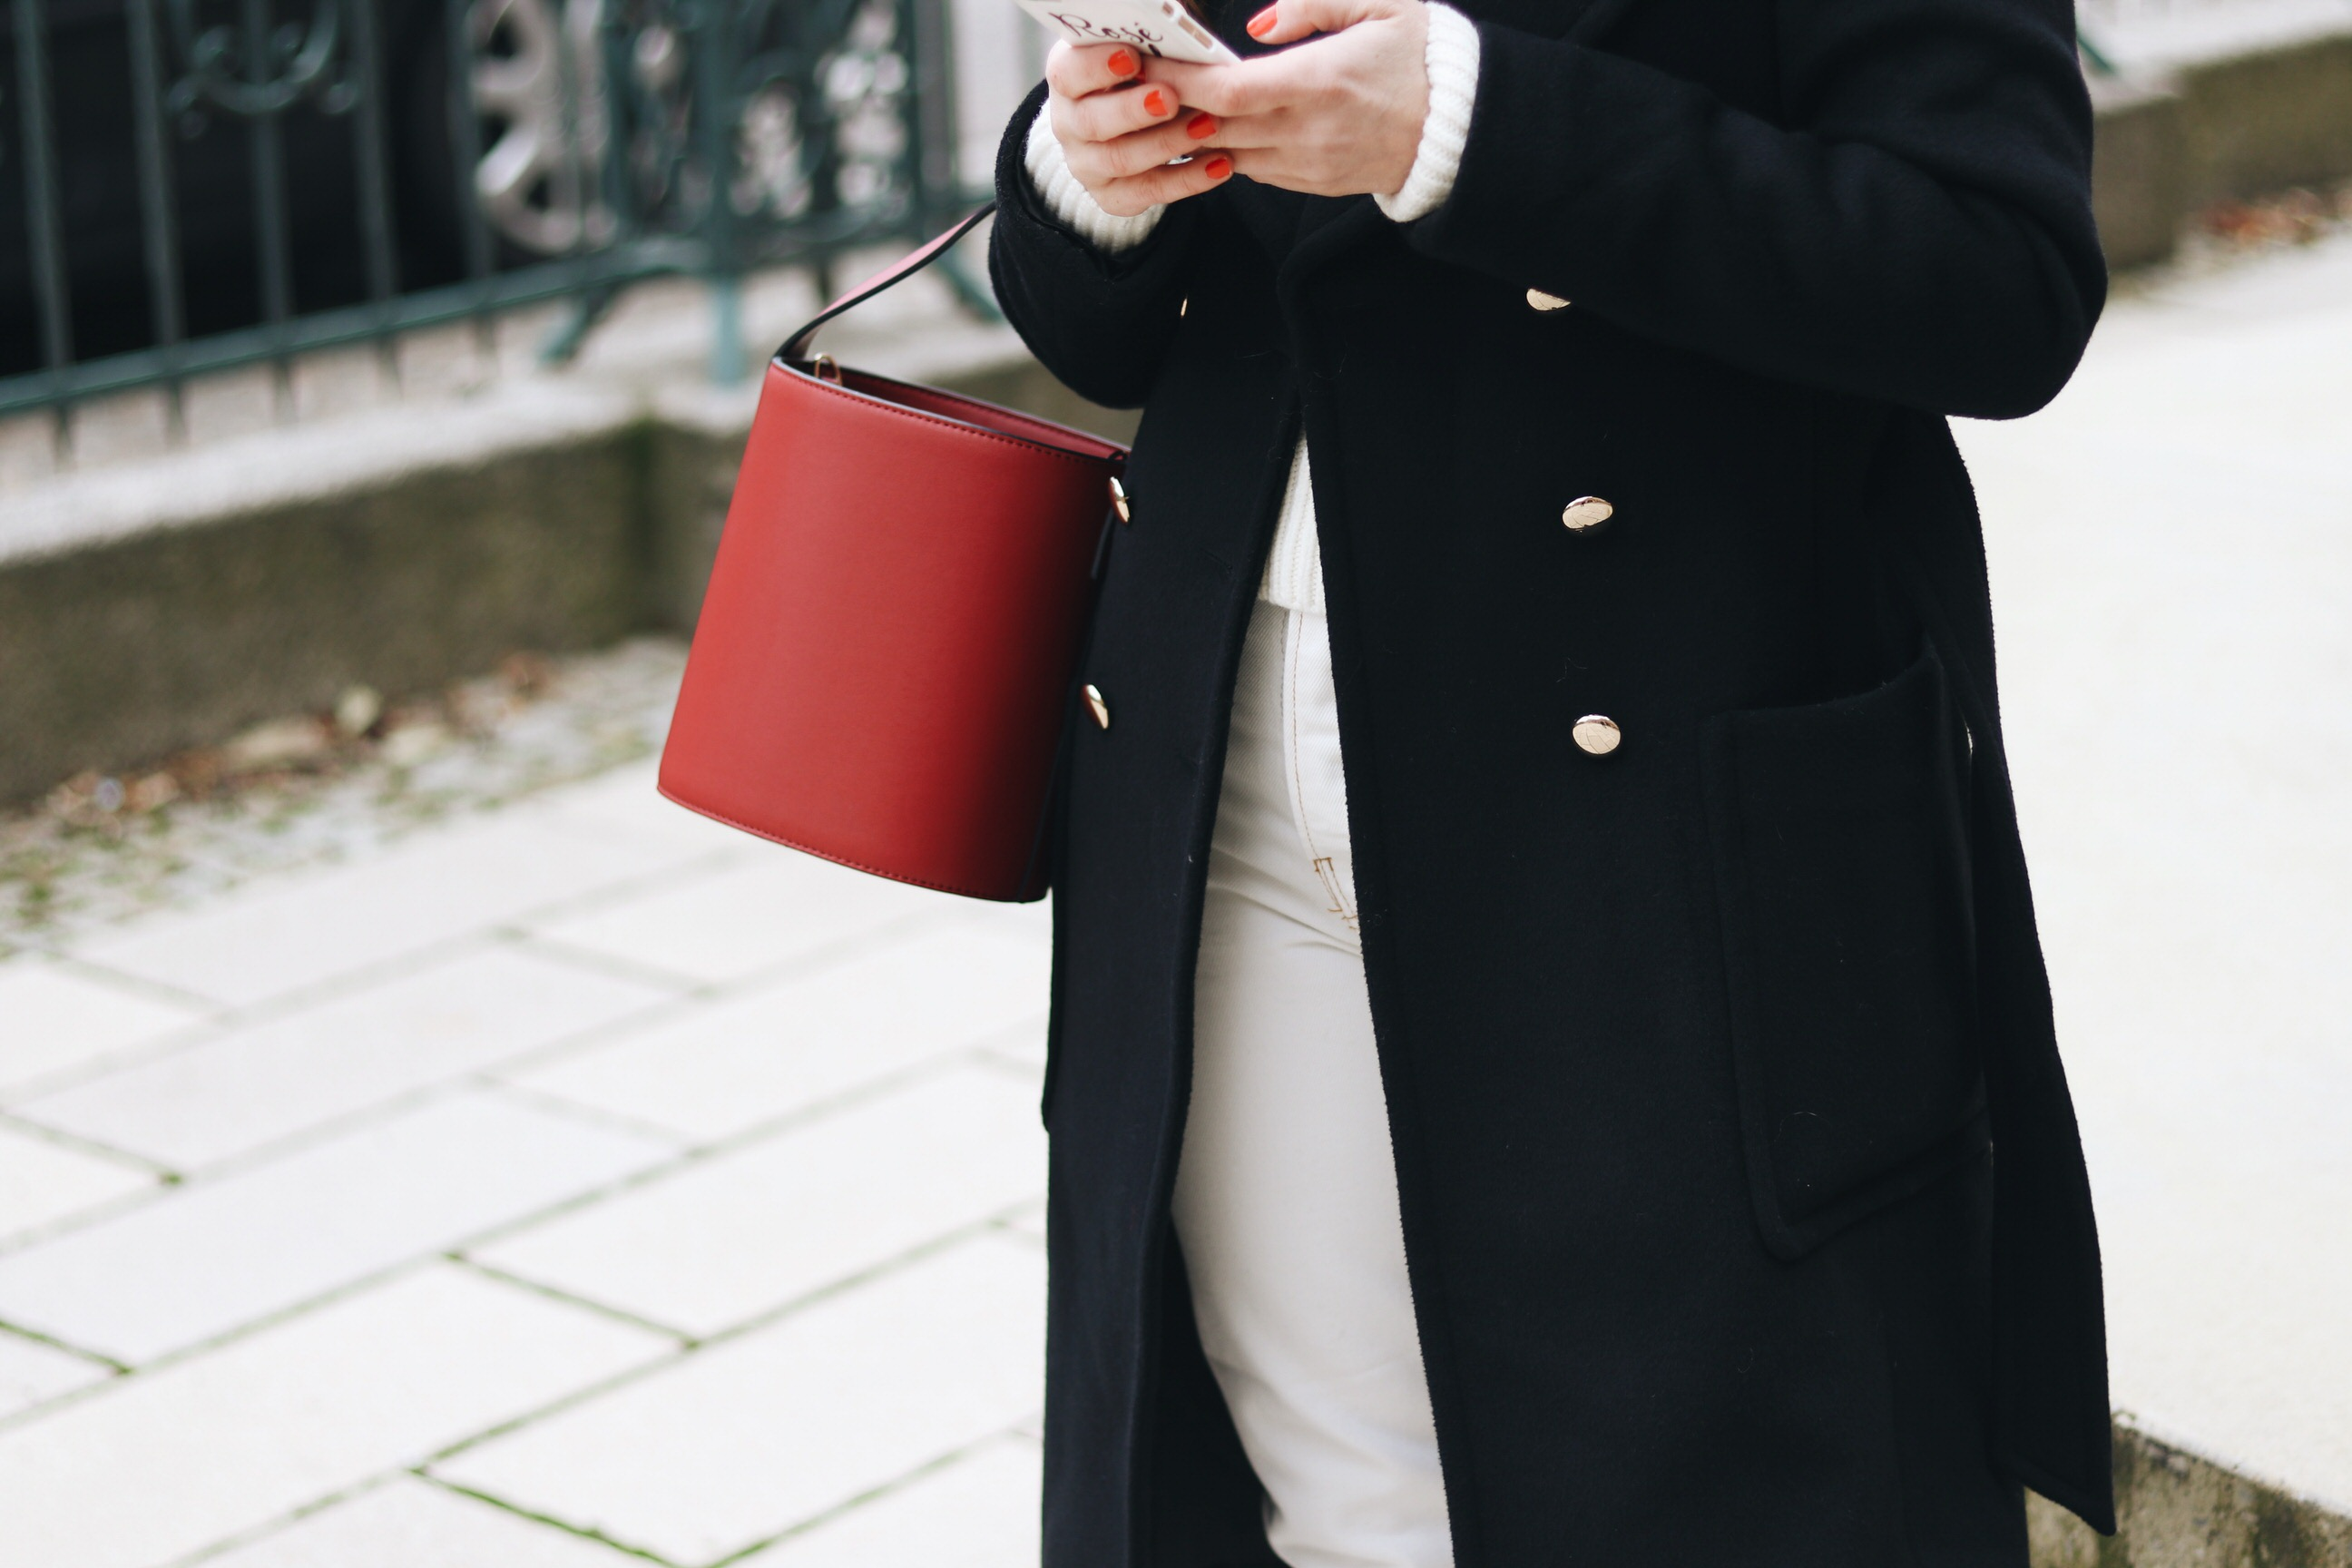 bucket bag Topshop kombinieren Winter Outfit Look Streetstyle Fashionblog